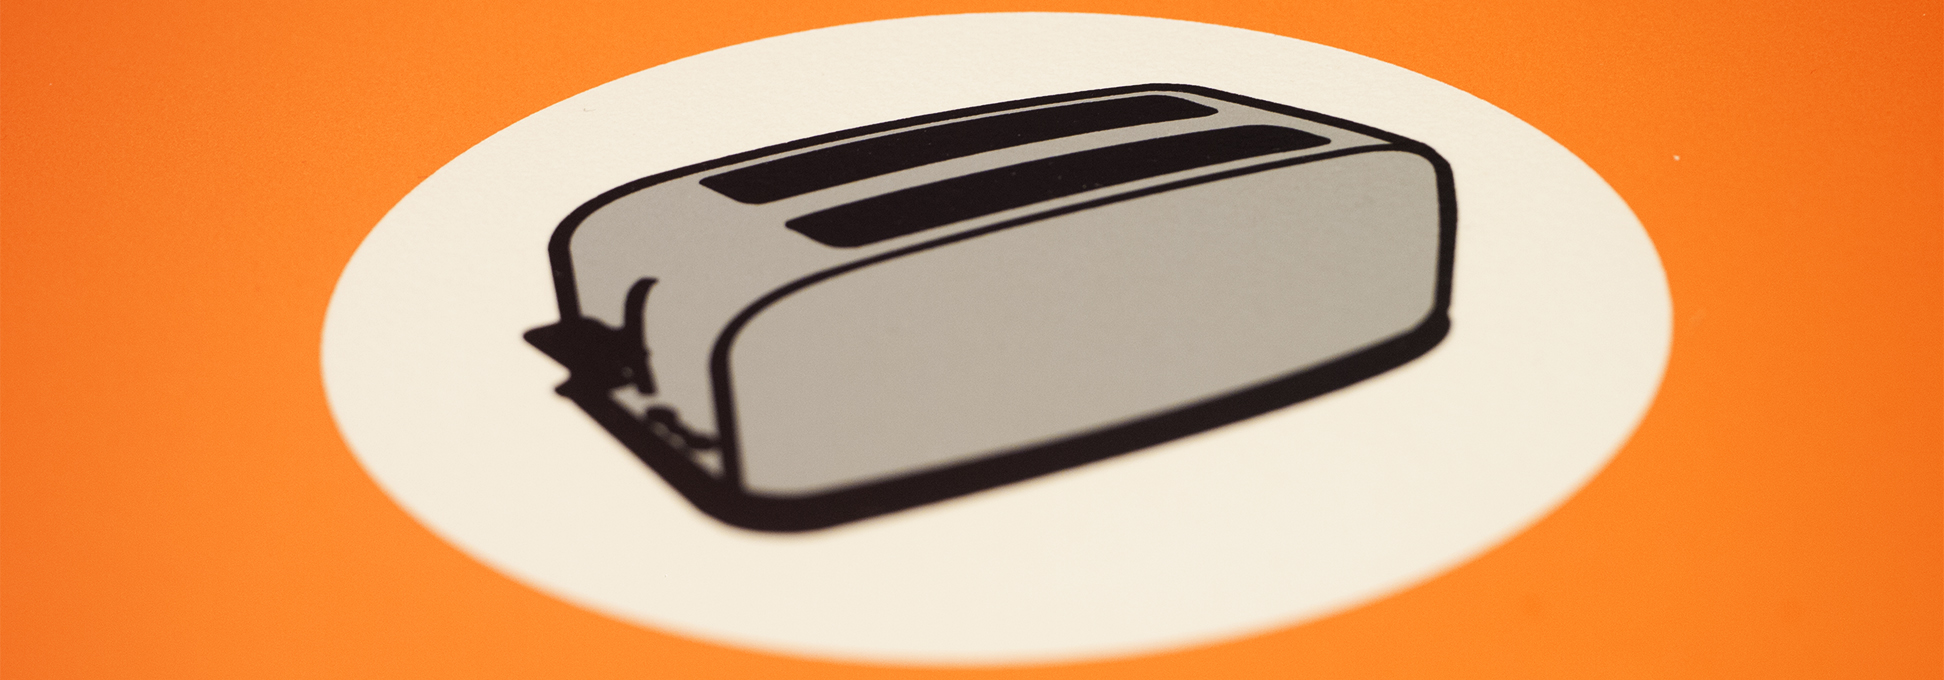 toaster-banner